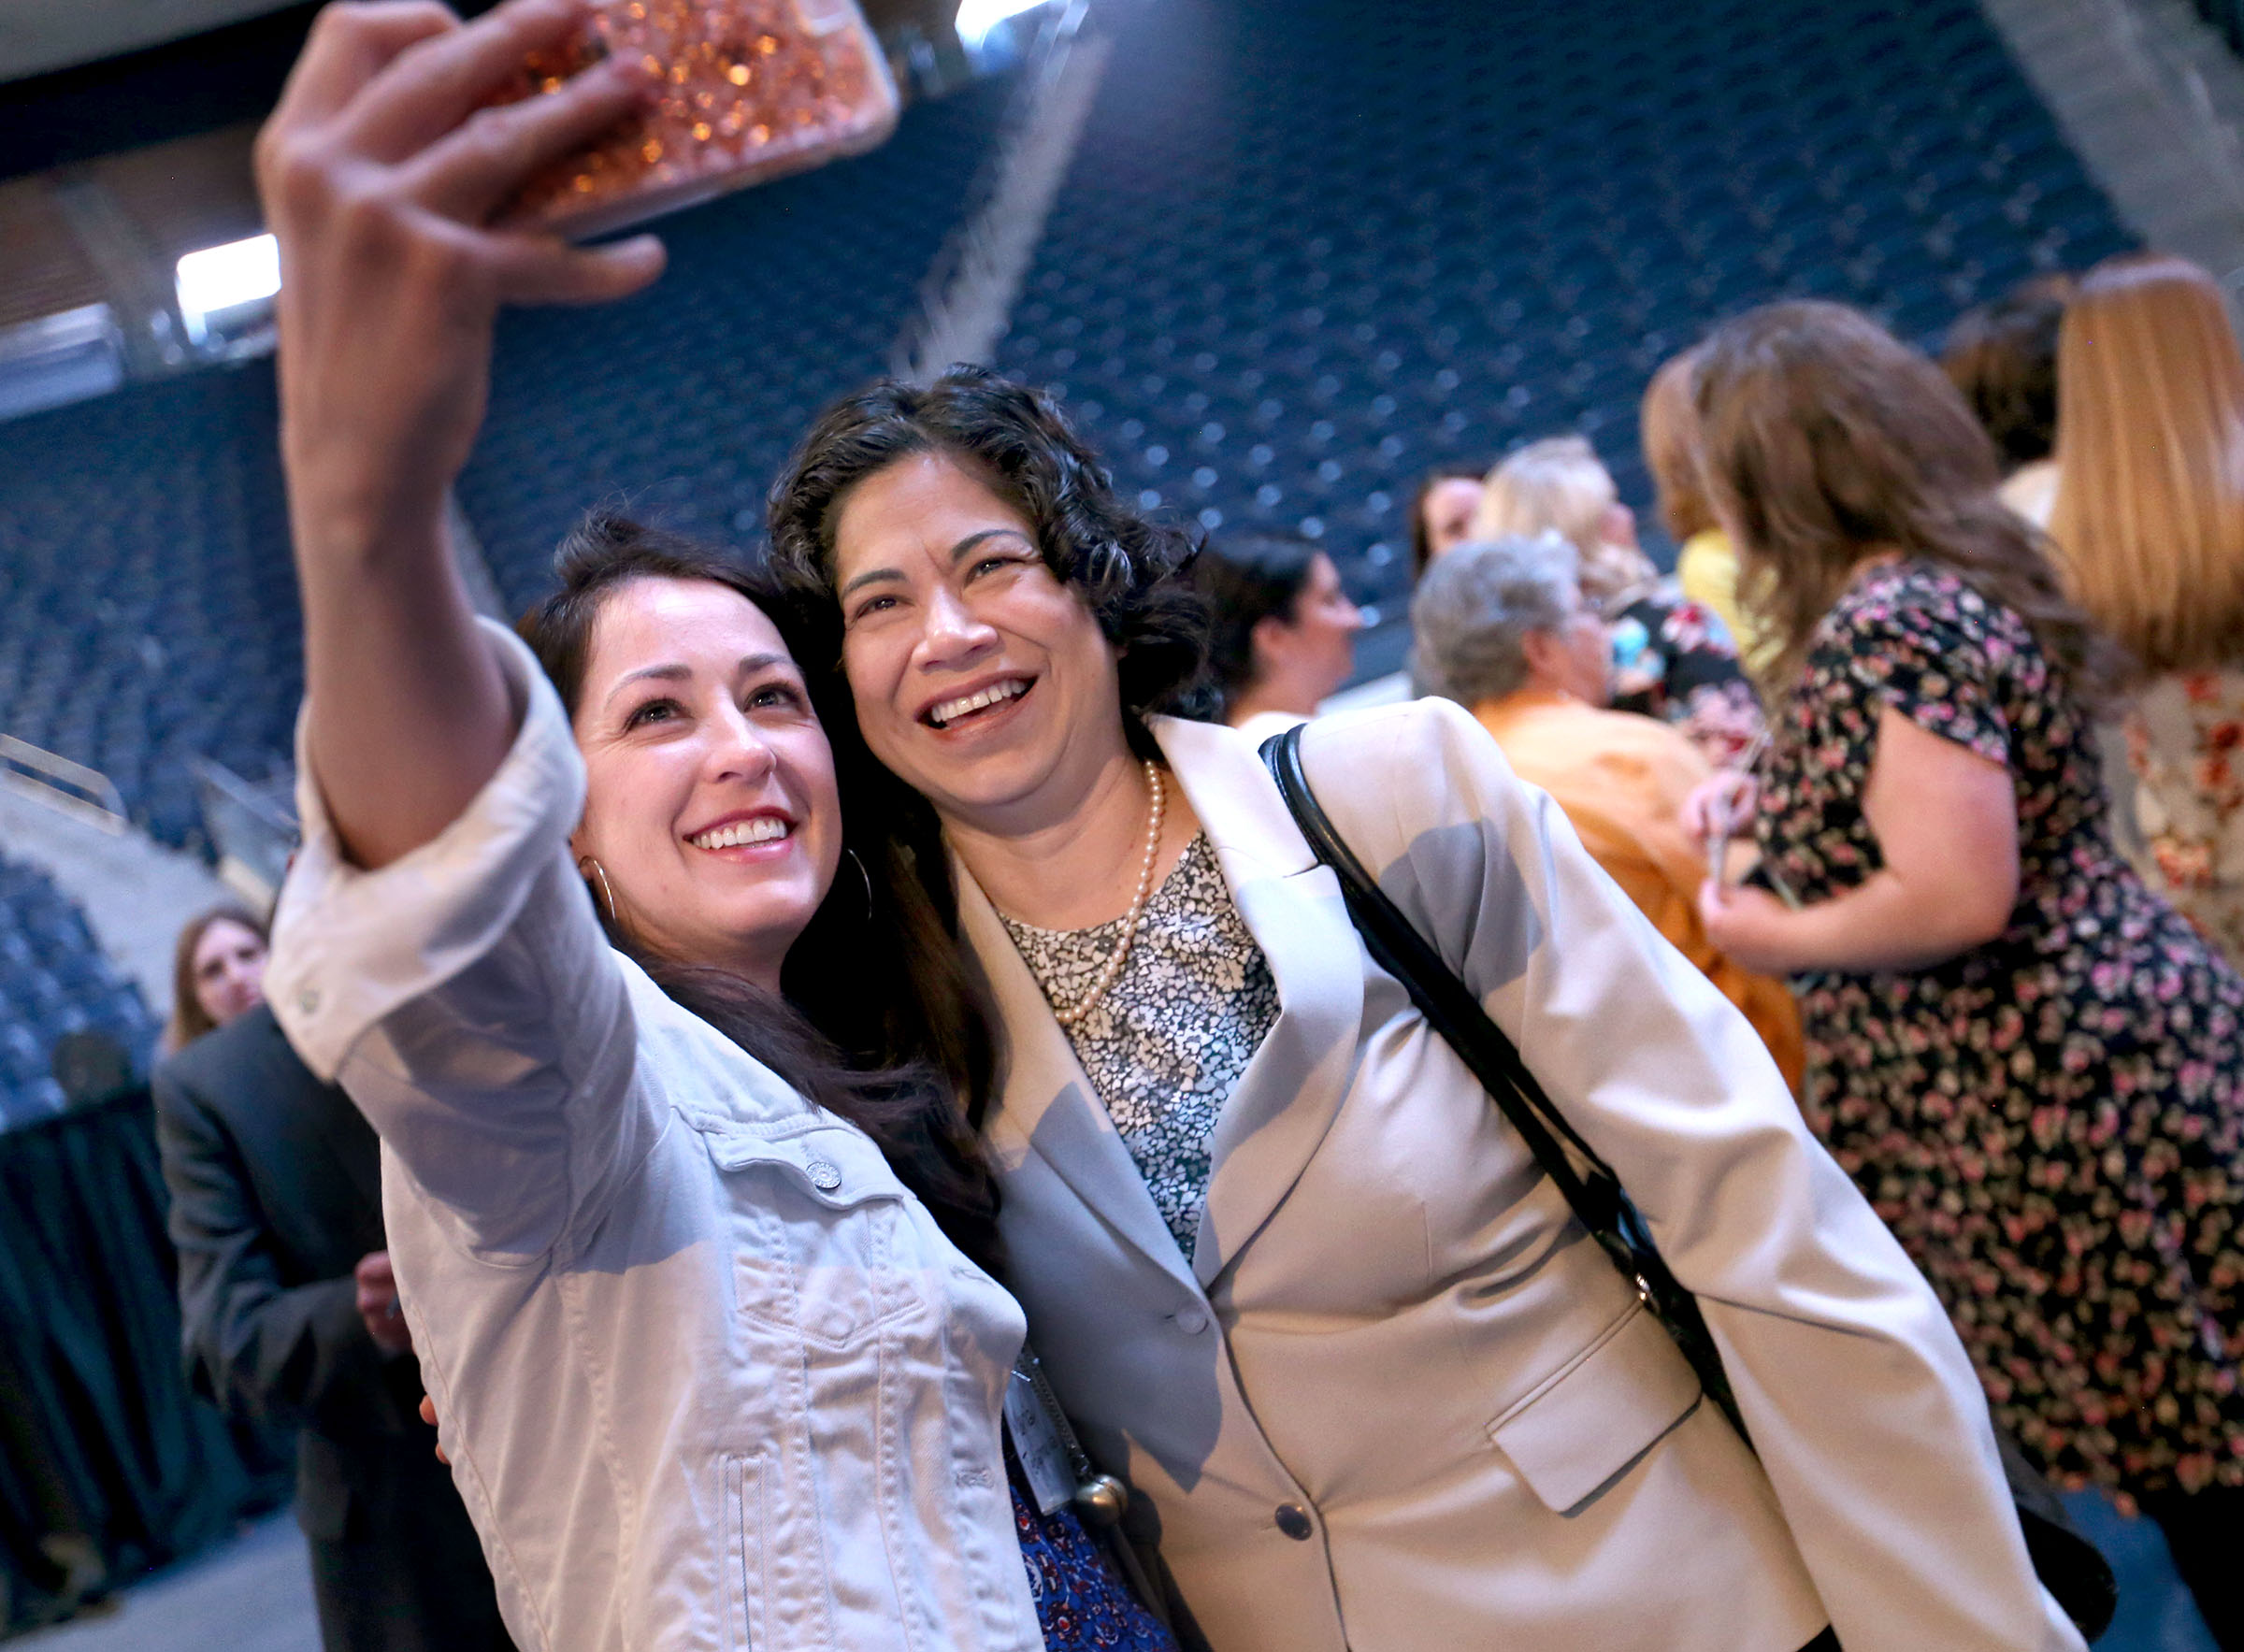 Maria Tedjamulia, left, takes a photograph with Reyna I. Aburto, Relief Society Presidency Second Counselor, after members of the Relief Society General Presidency spoke at the BYU Women's Conference in the Marriott Center at BYU in Provo on Friday, May 5, 2017.